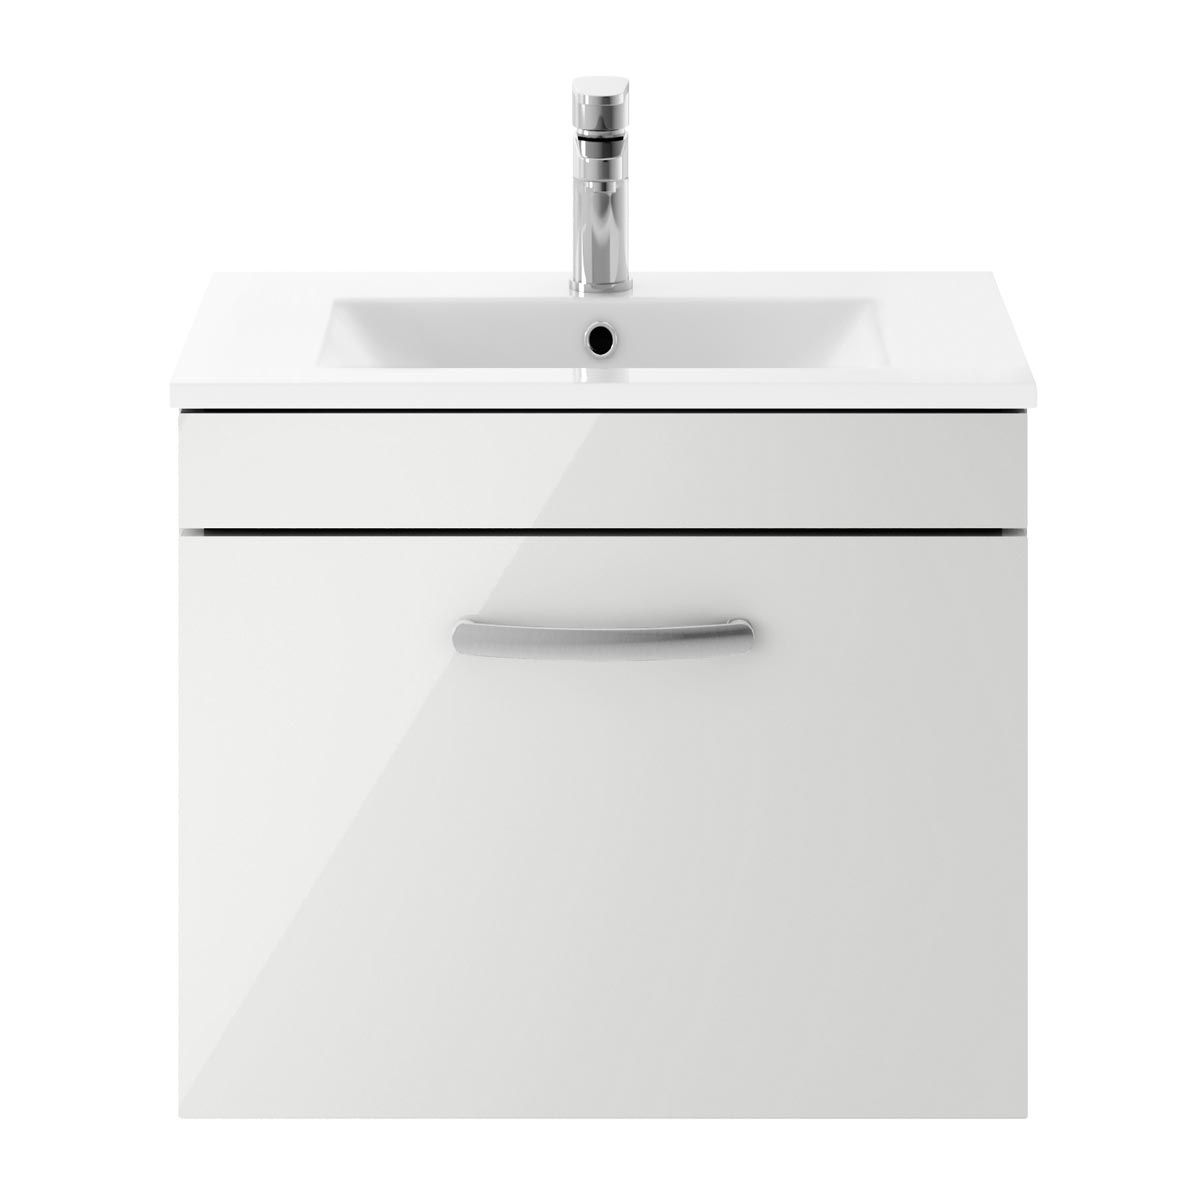 Nuie Athena Gloss Grey Mist 1 Drawer Wall Hung Vanity Unit with 18mm Profile Basin 600mm